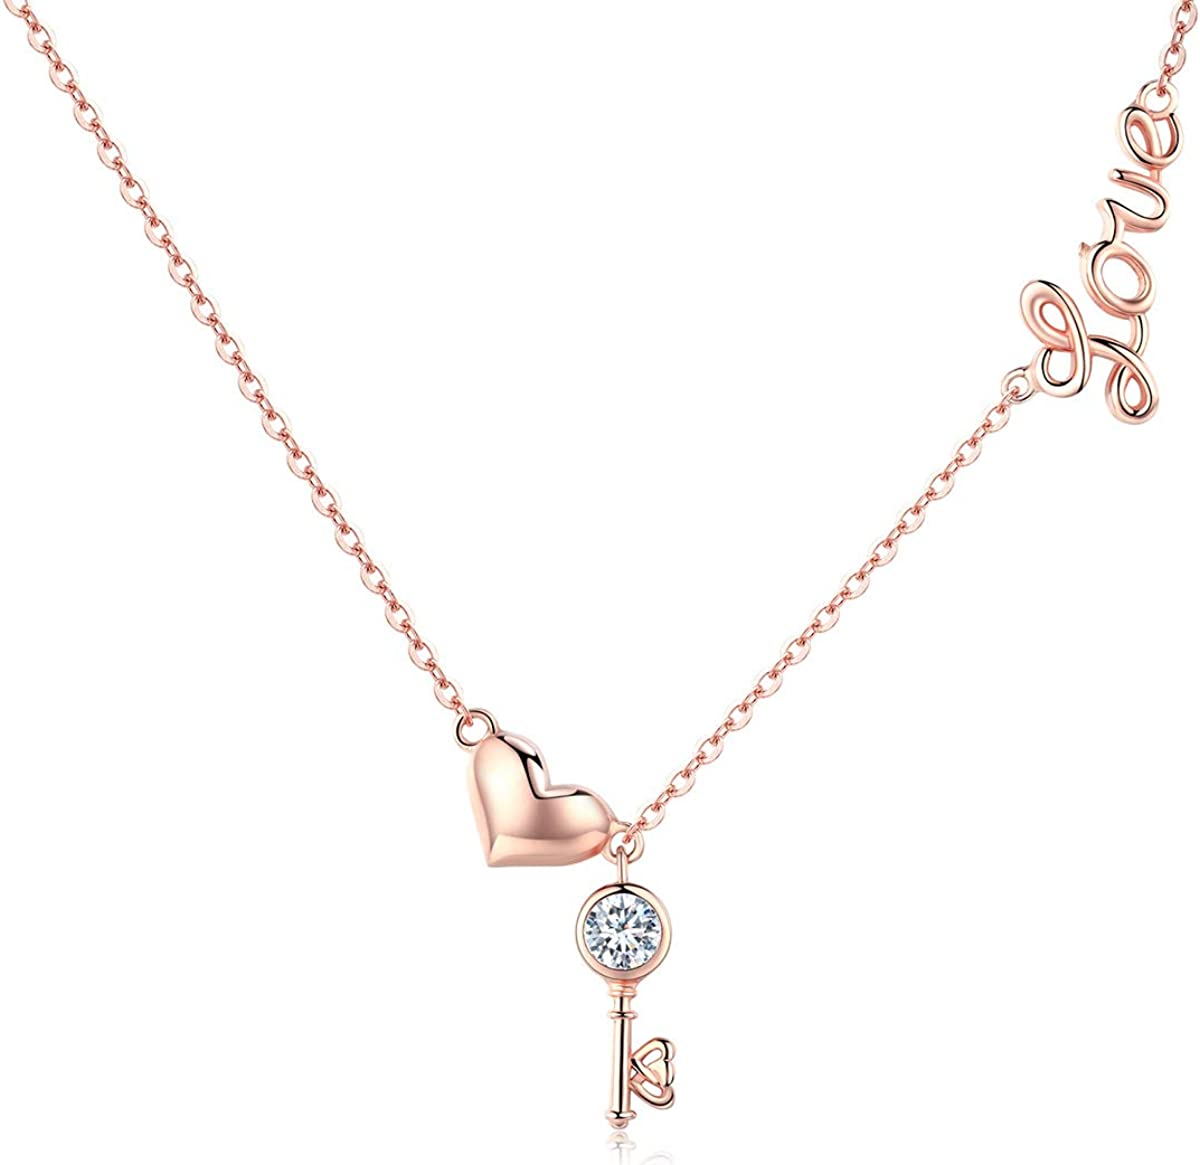 Amazon Com Heidou Sweet Rose Gold Love Necklace With Key Pendant Fashion Heart Neck Chain For Women Jewelry